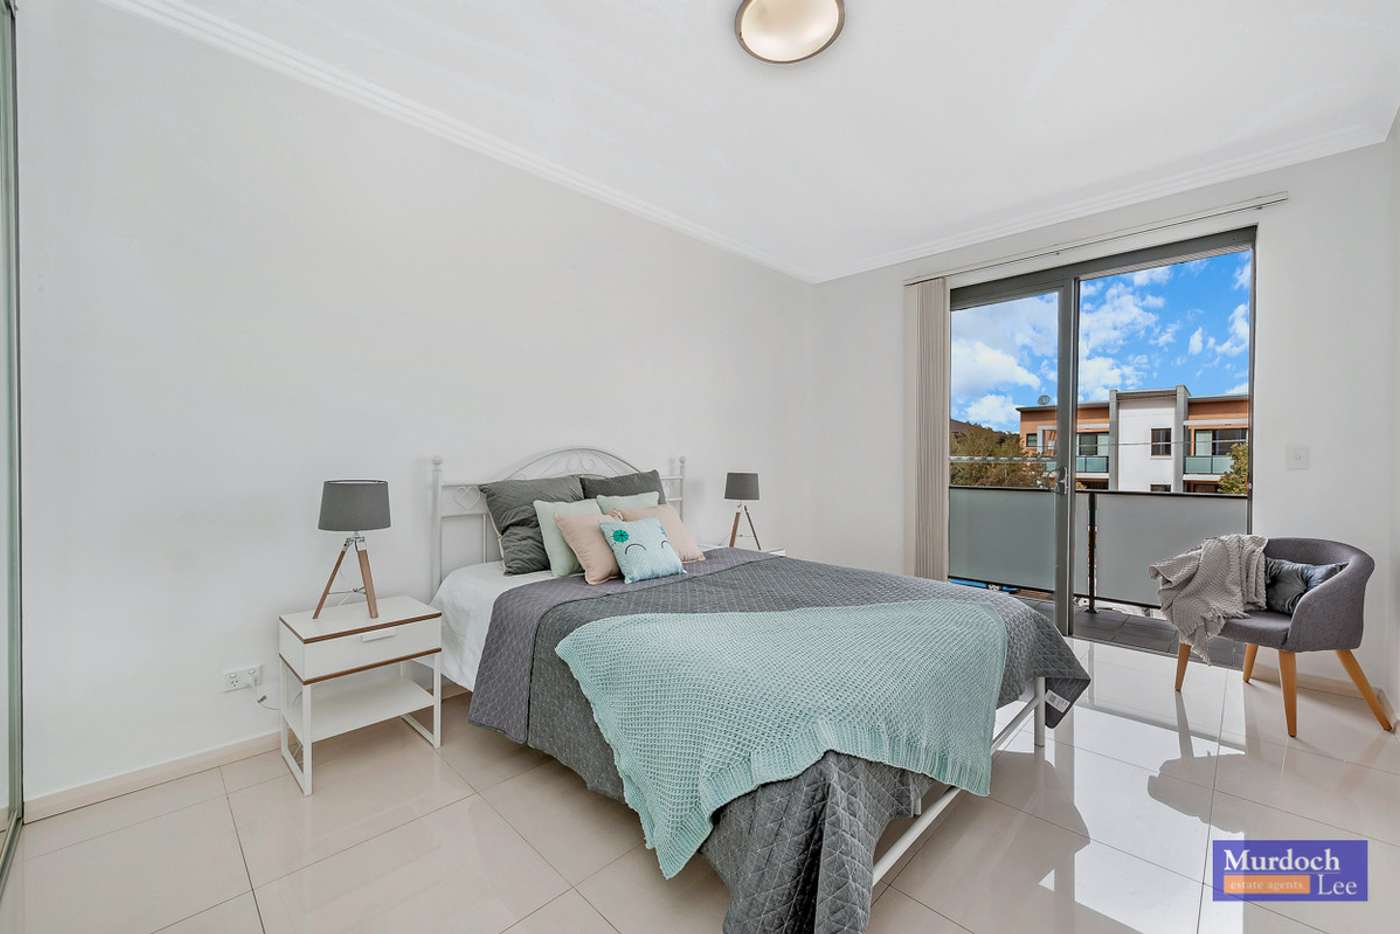 Fifth view of Homely apartment listing, 6/34-36 Napier Street, Parramatta NSW 2150